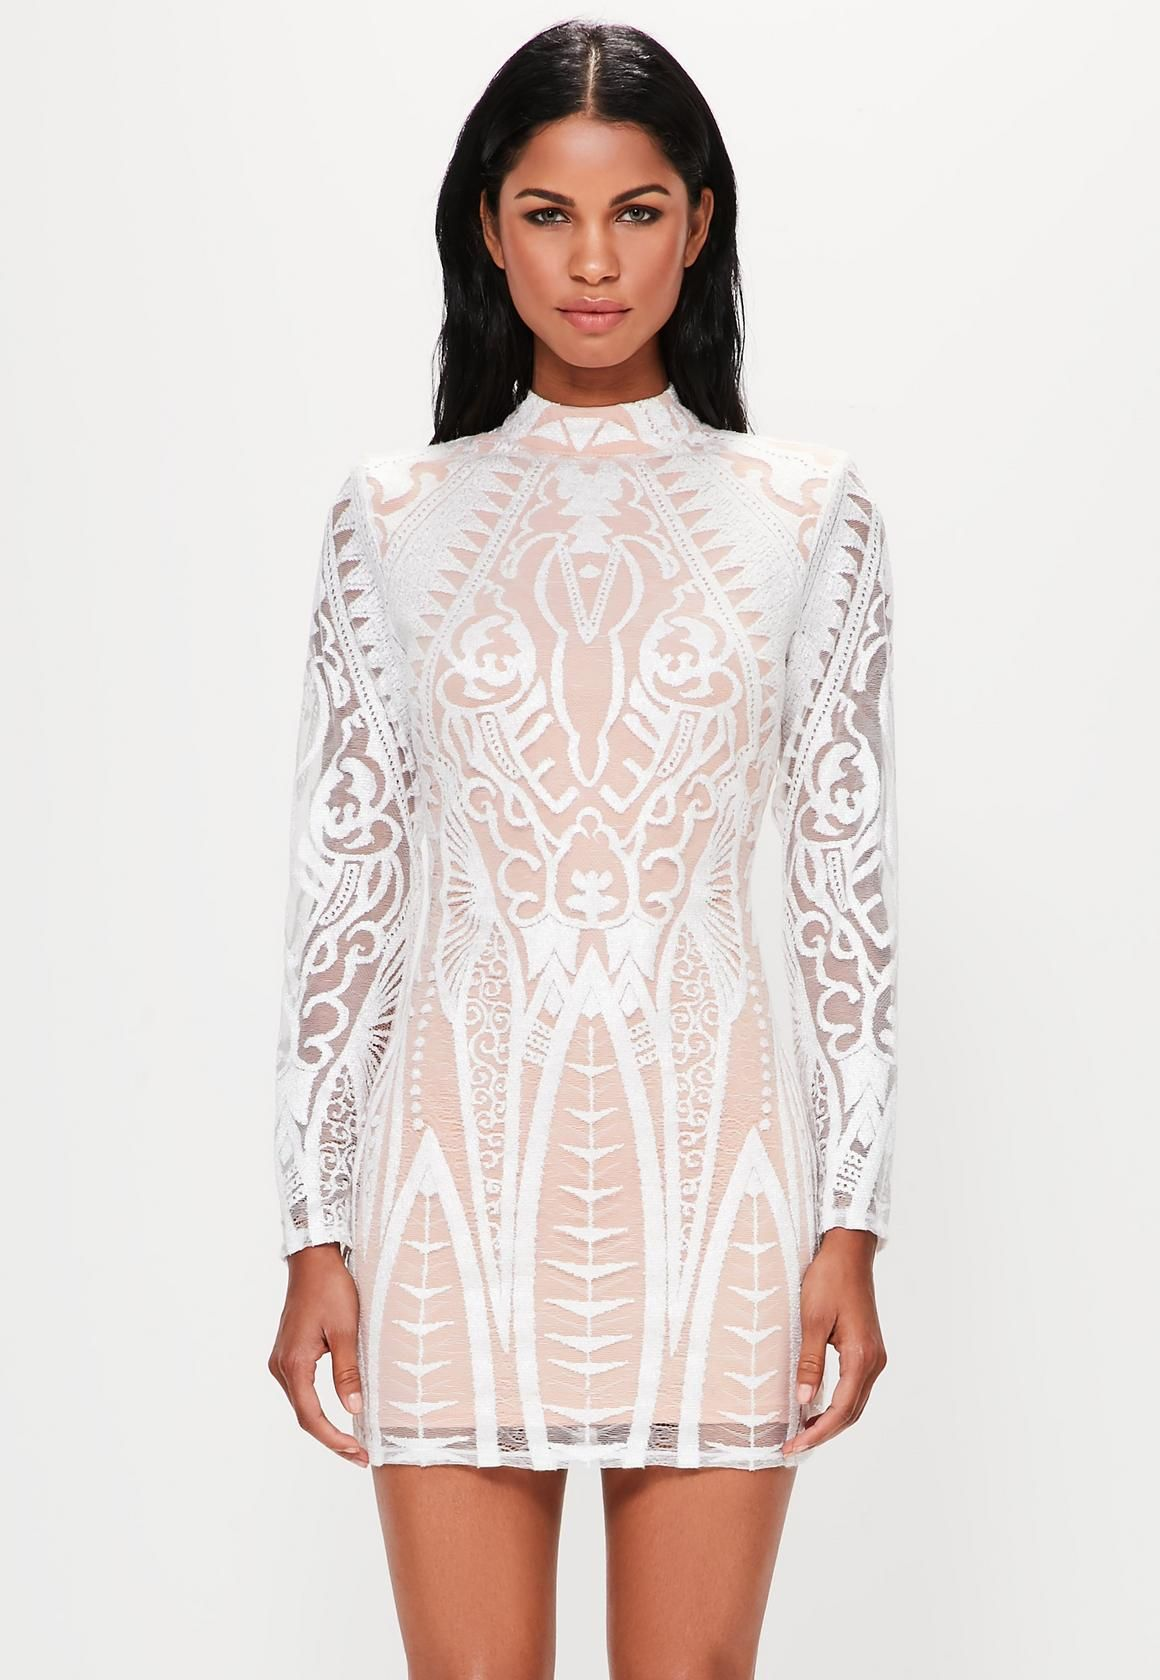 5931748874ce Missguided - Peace Love White Placed Lace High Neck Mini Dress White Long  Sleeve Dress,